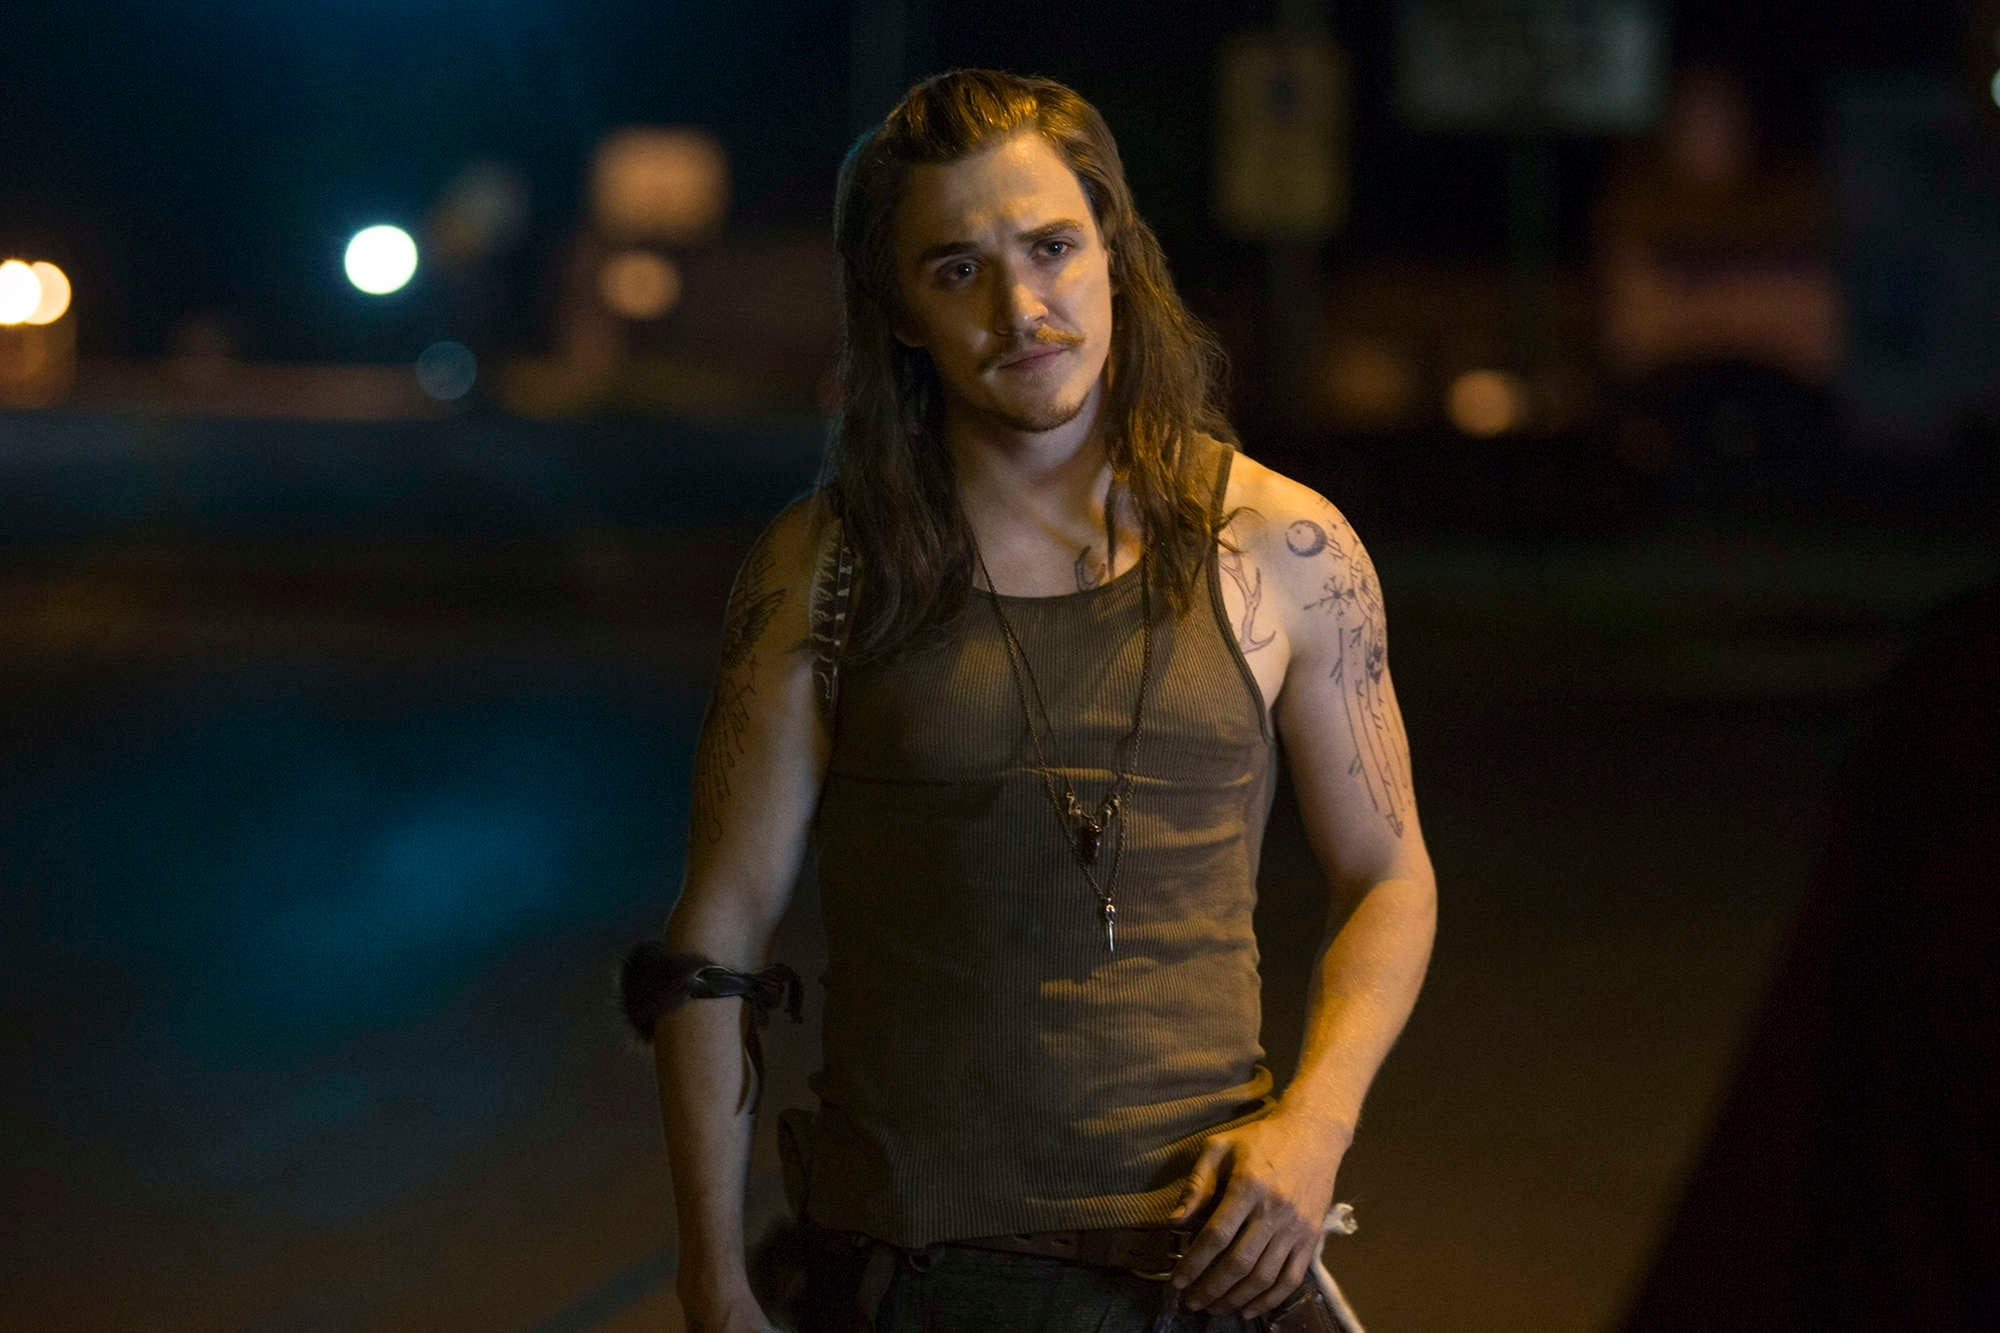 kyle-gallner-as-hasil-in-wgn-americas-new-series-outsiders-premiering-tuesday-january-26-at-9pm-etpt